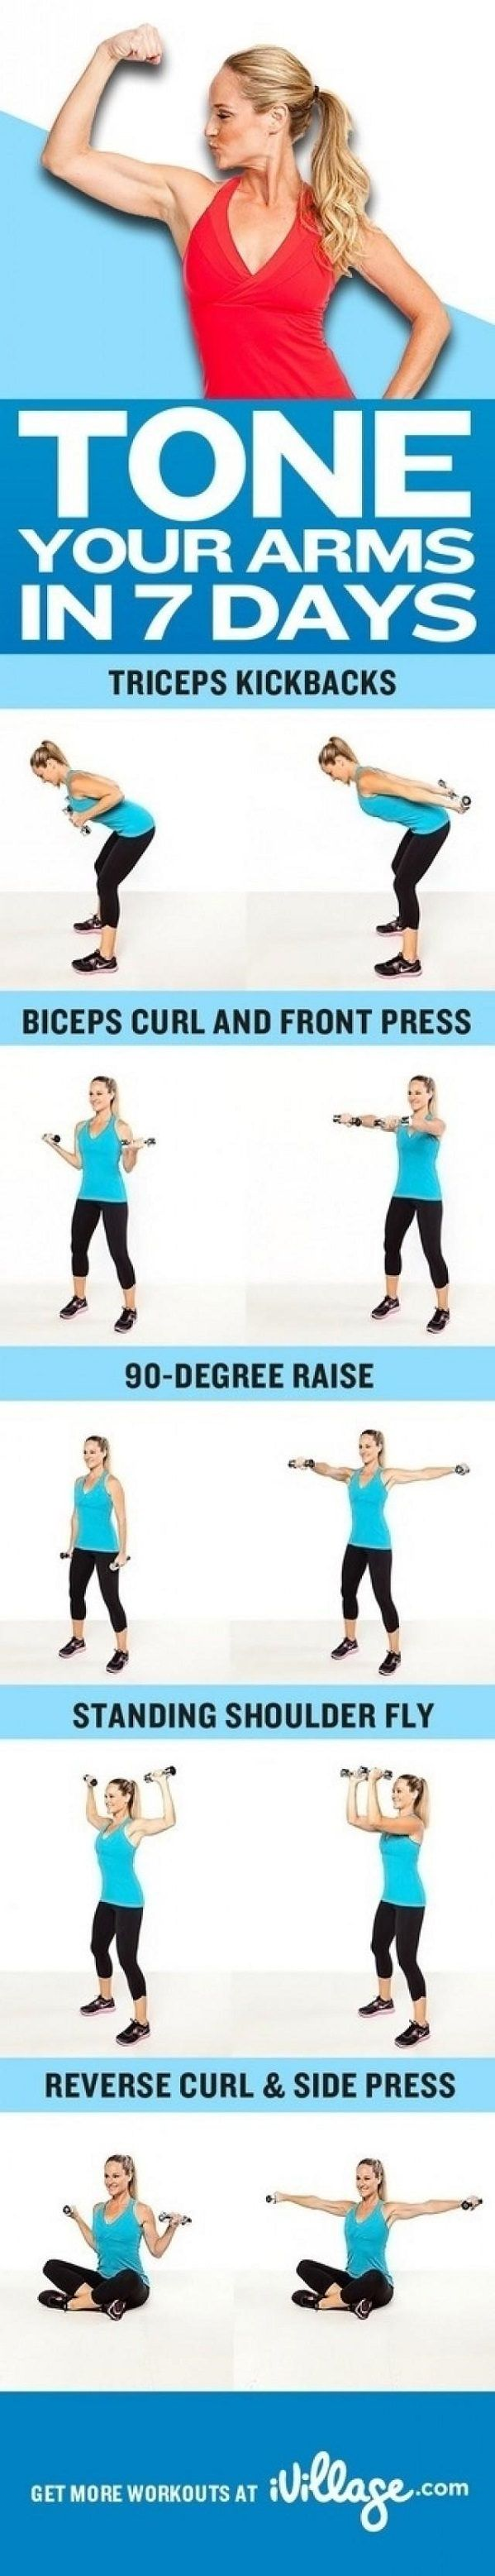 These workout diagrams are all you need to get in shape this